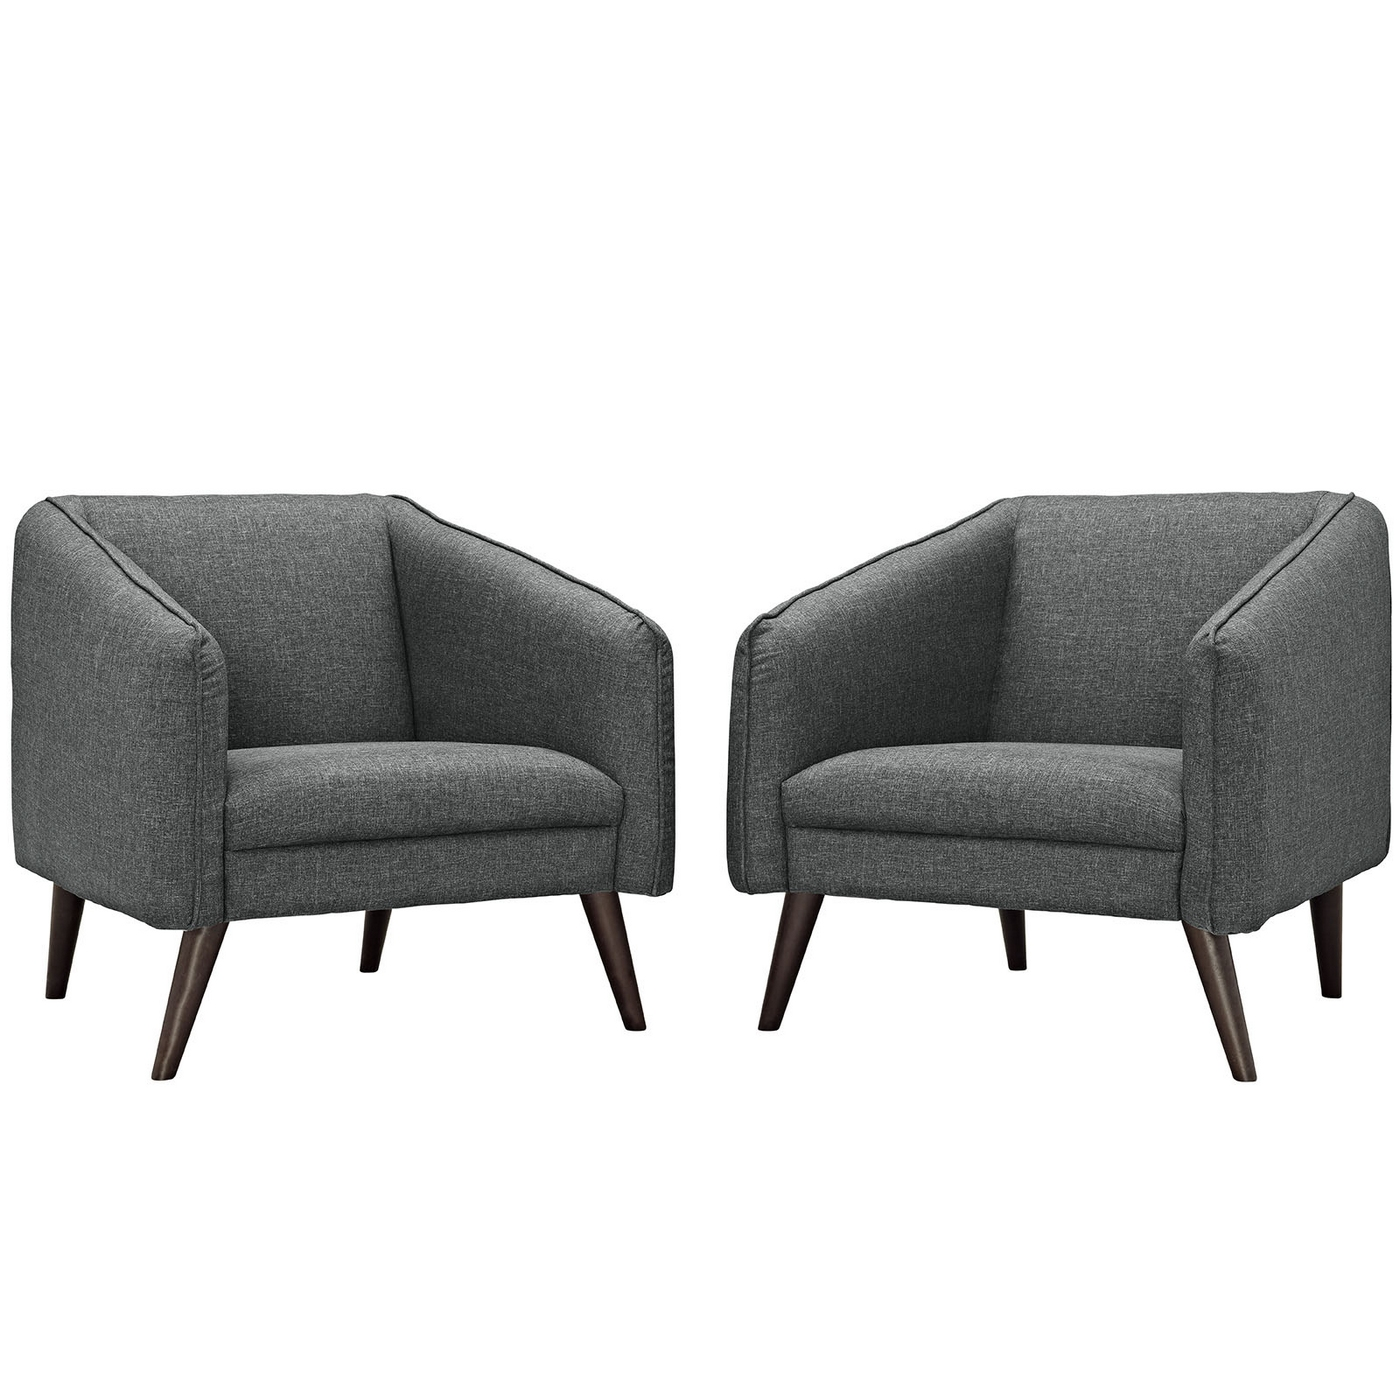 Of 2 Slide Modern Upholstered Armchairs W/ Wooden Dowel Legs Gray. Full resolution  file, nominally Width 1400 Height 1400 pixels, file with #5A4E47.